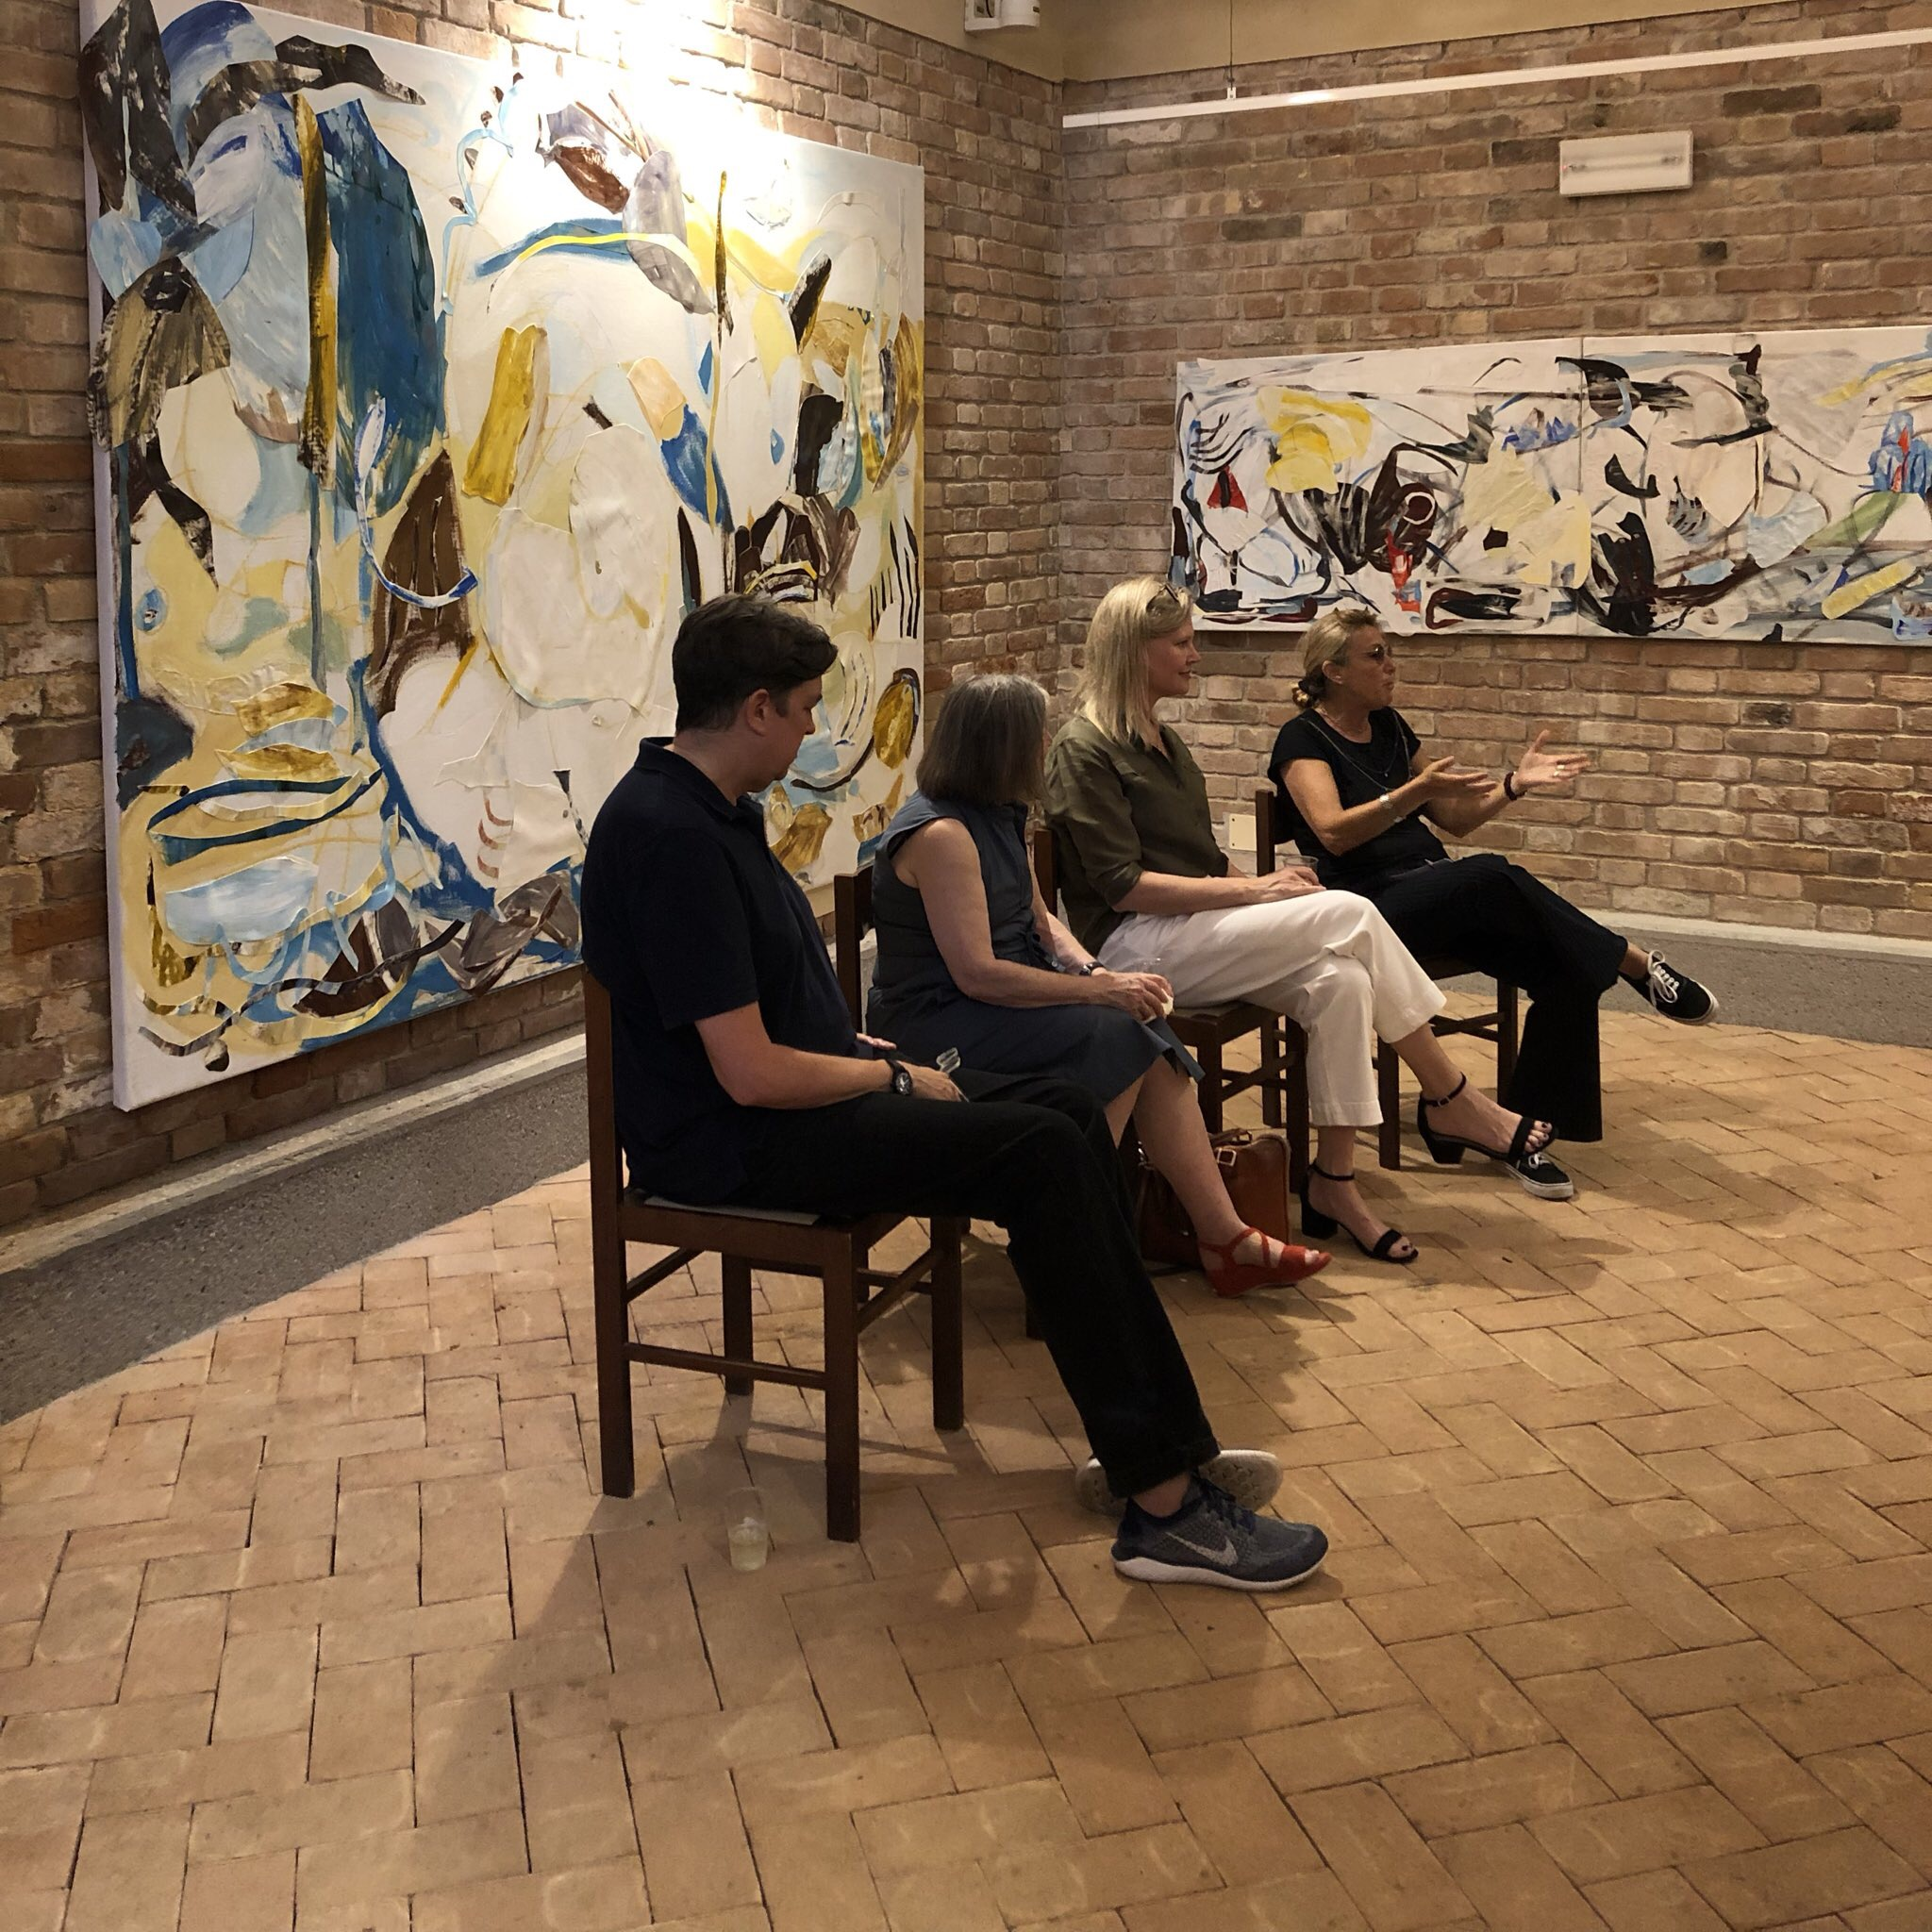 Pratt in Venice-organized panel for  Art Night 2019 , featuring exhibiting artists Michael Brennan, Monique Rollins, curator Martina Cavallarin, and Pratt in Venice Director Diana Gisolfi.